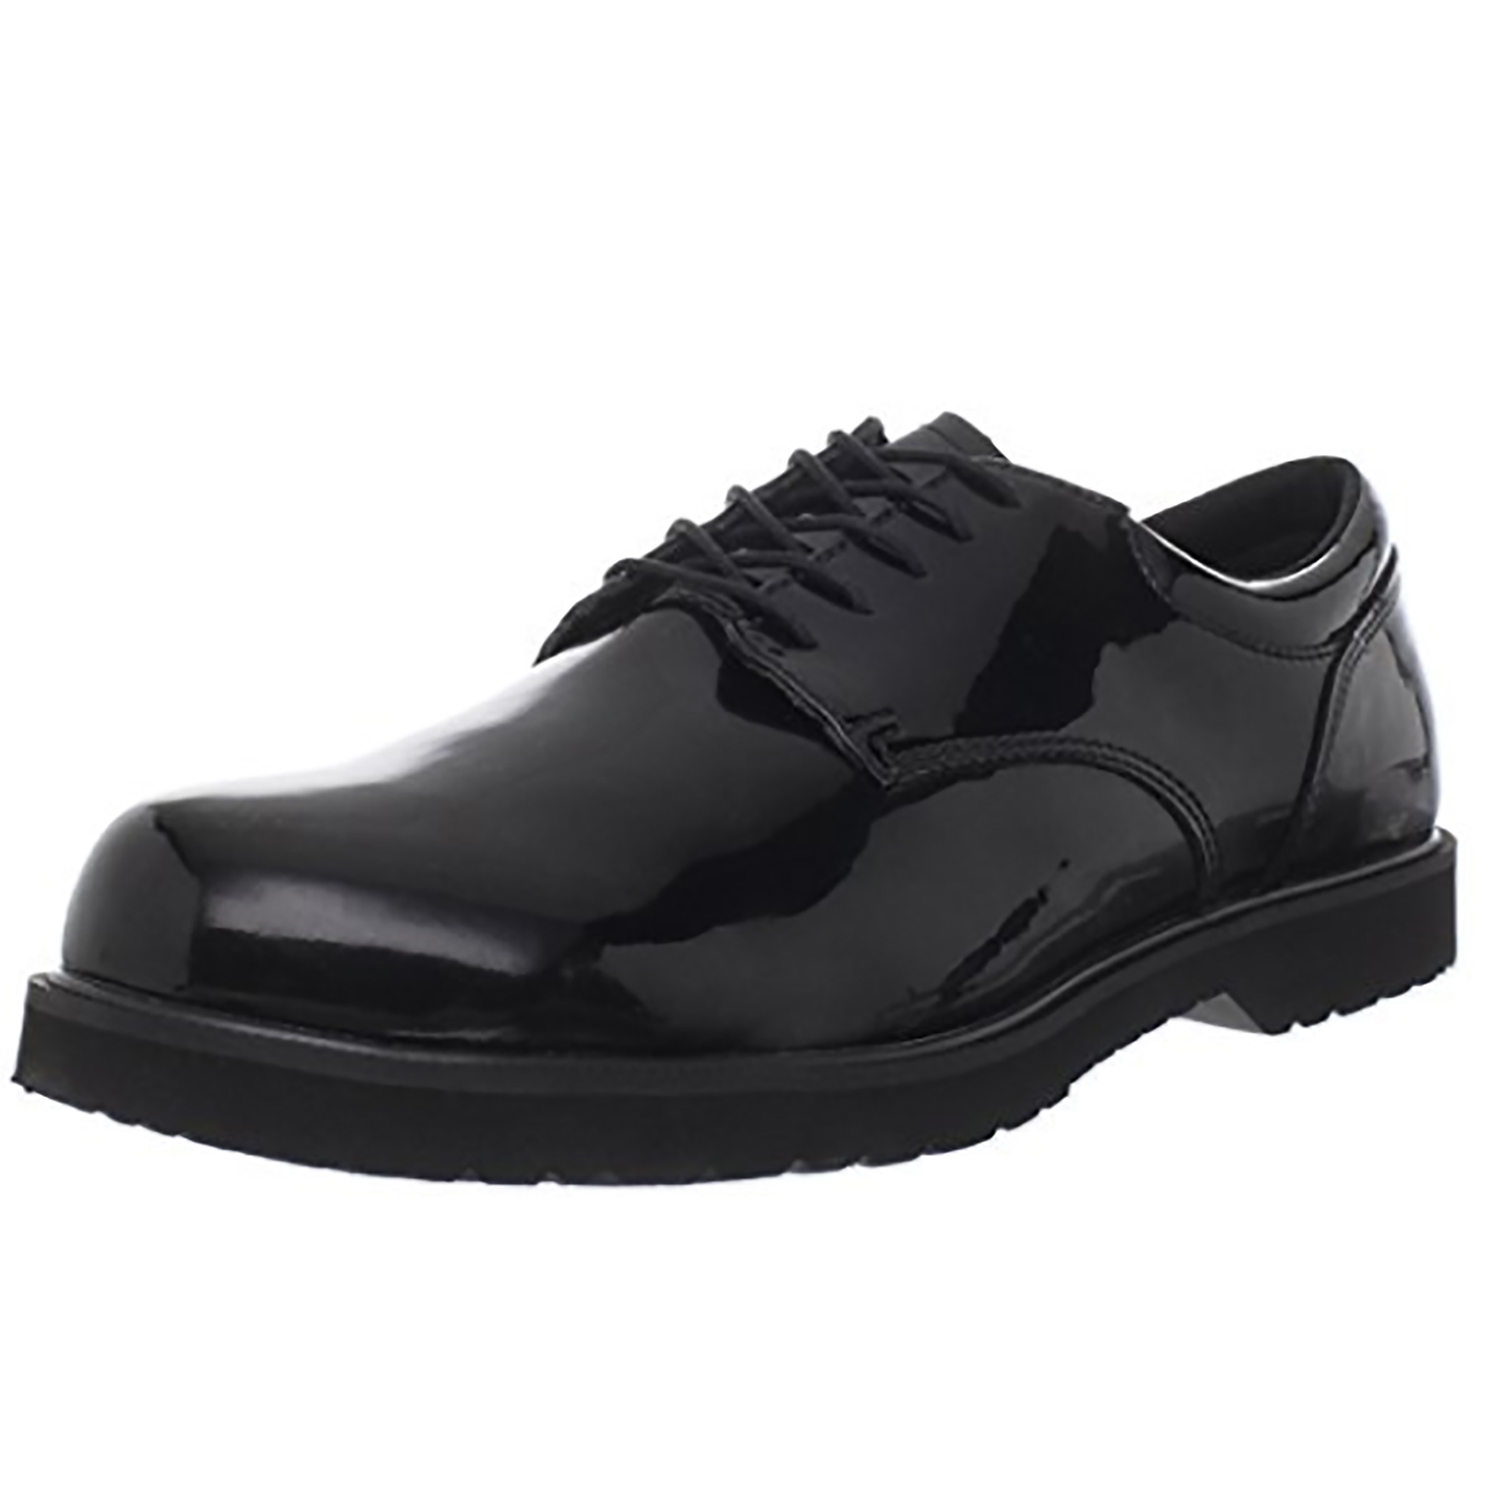 Bates Hi Gloss Dress Shoe